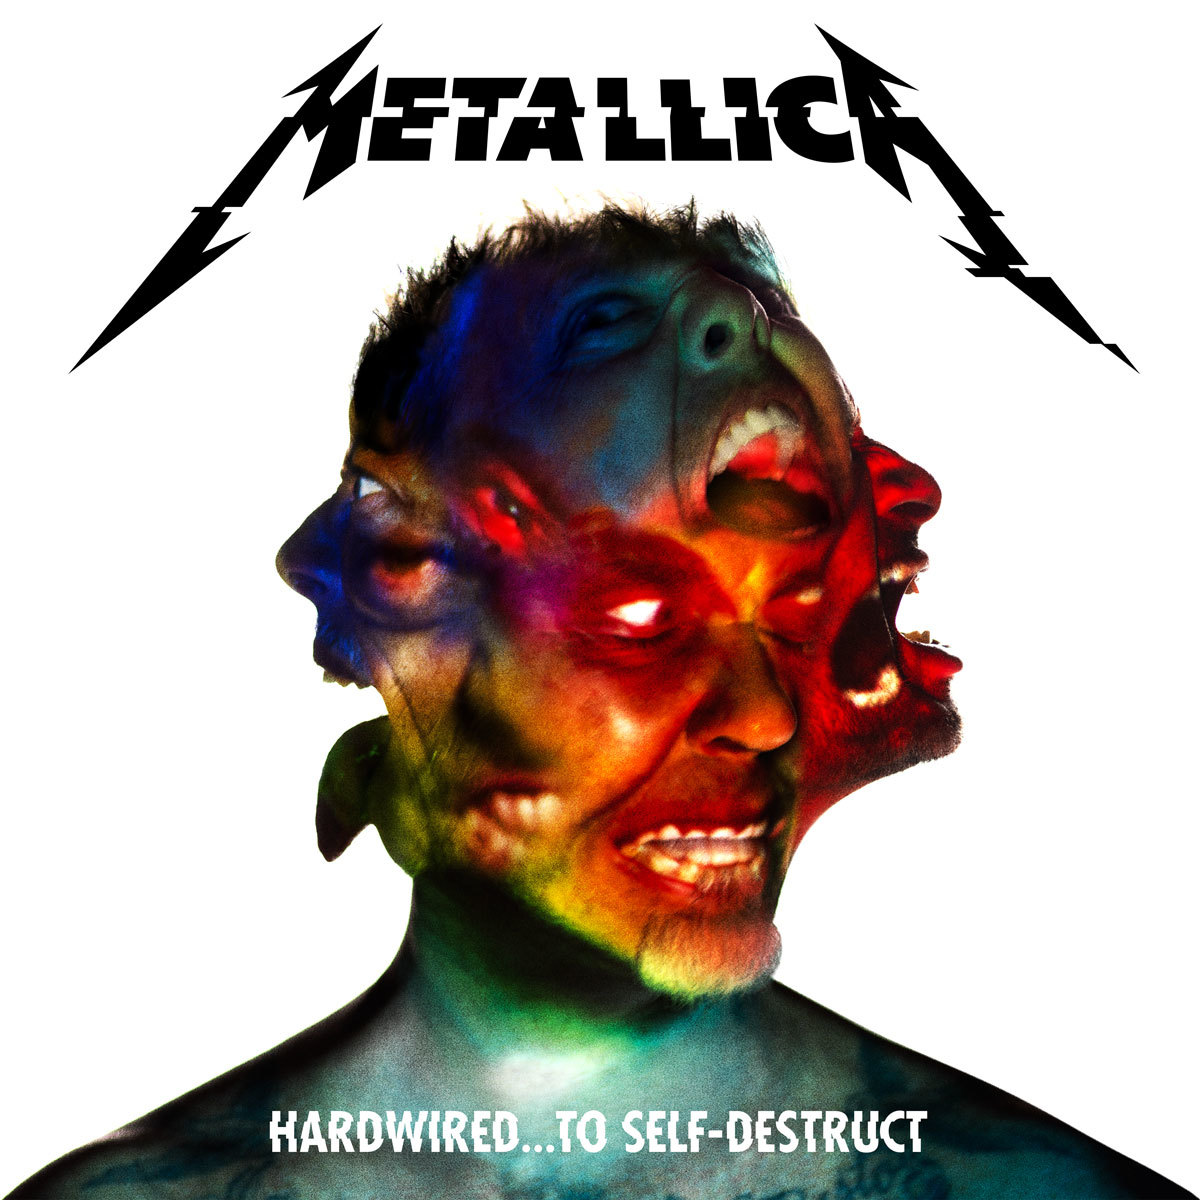 metallica hardwired to self destruct cover art 2016 source official website